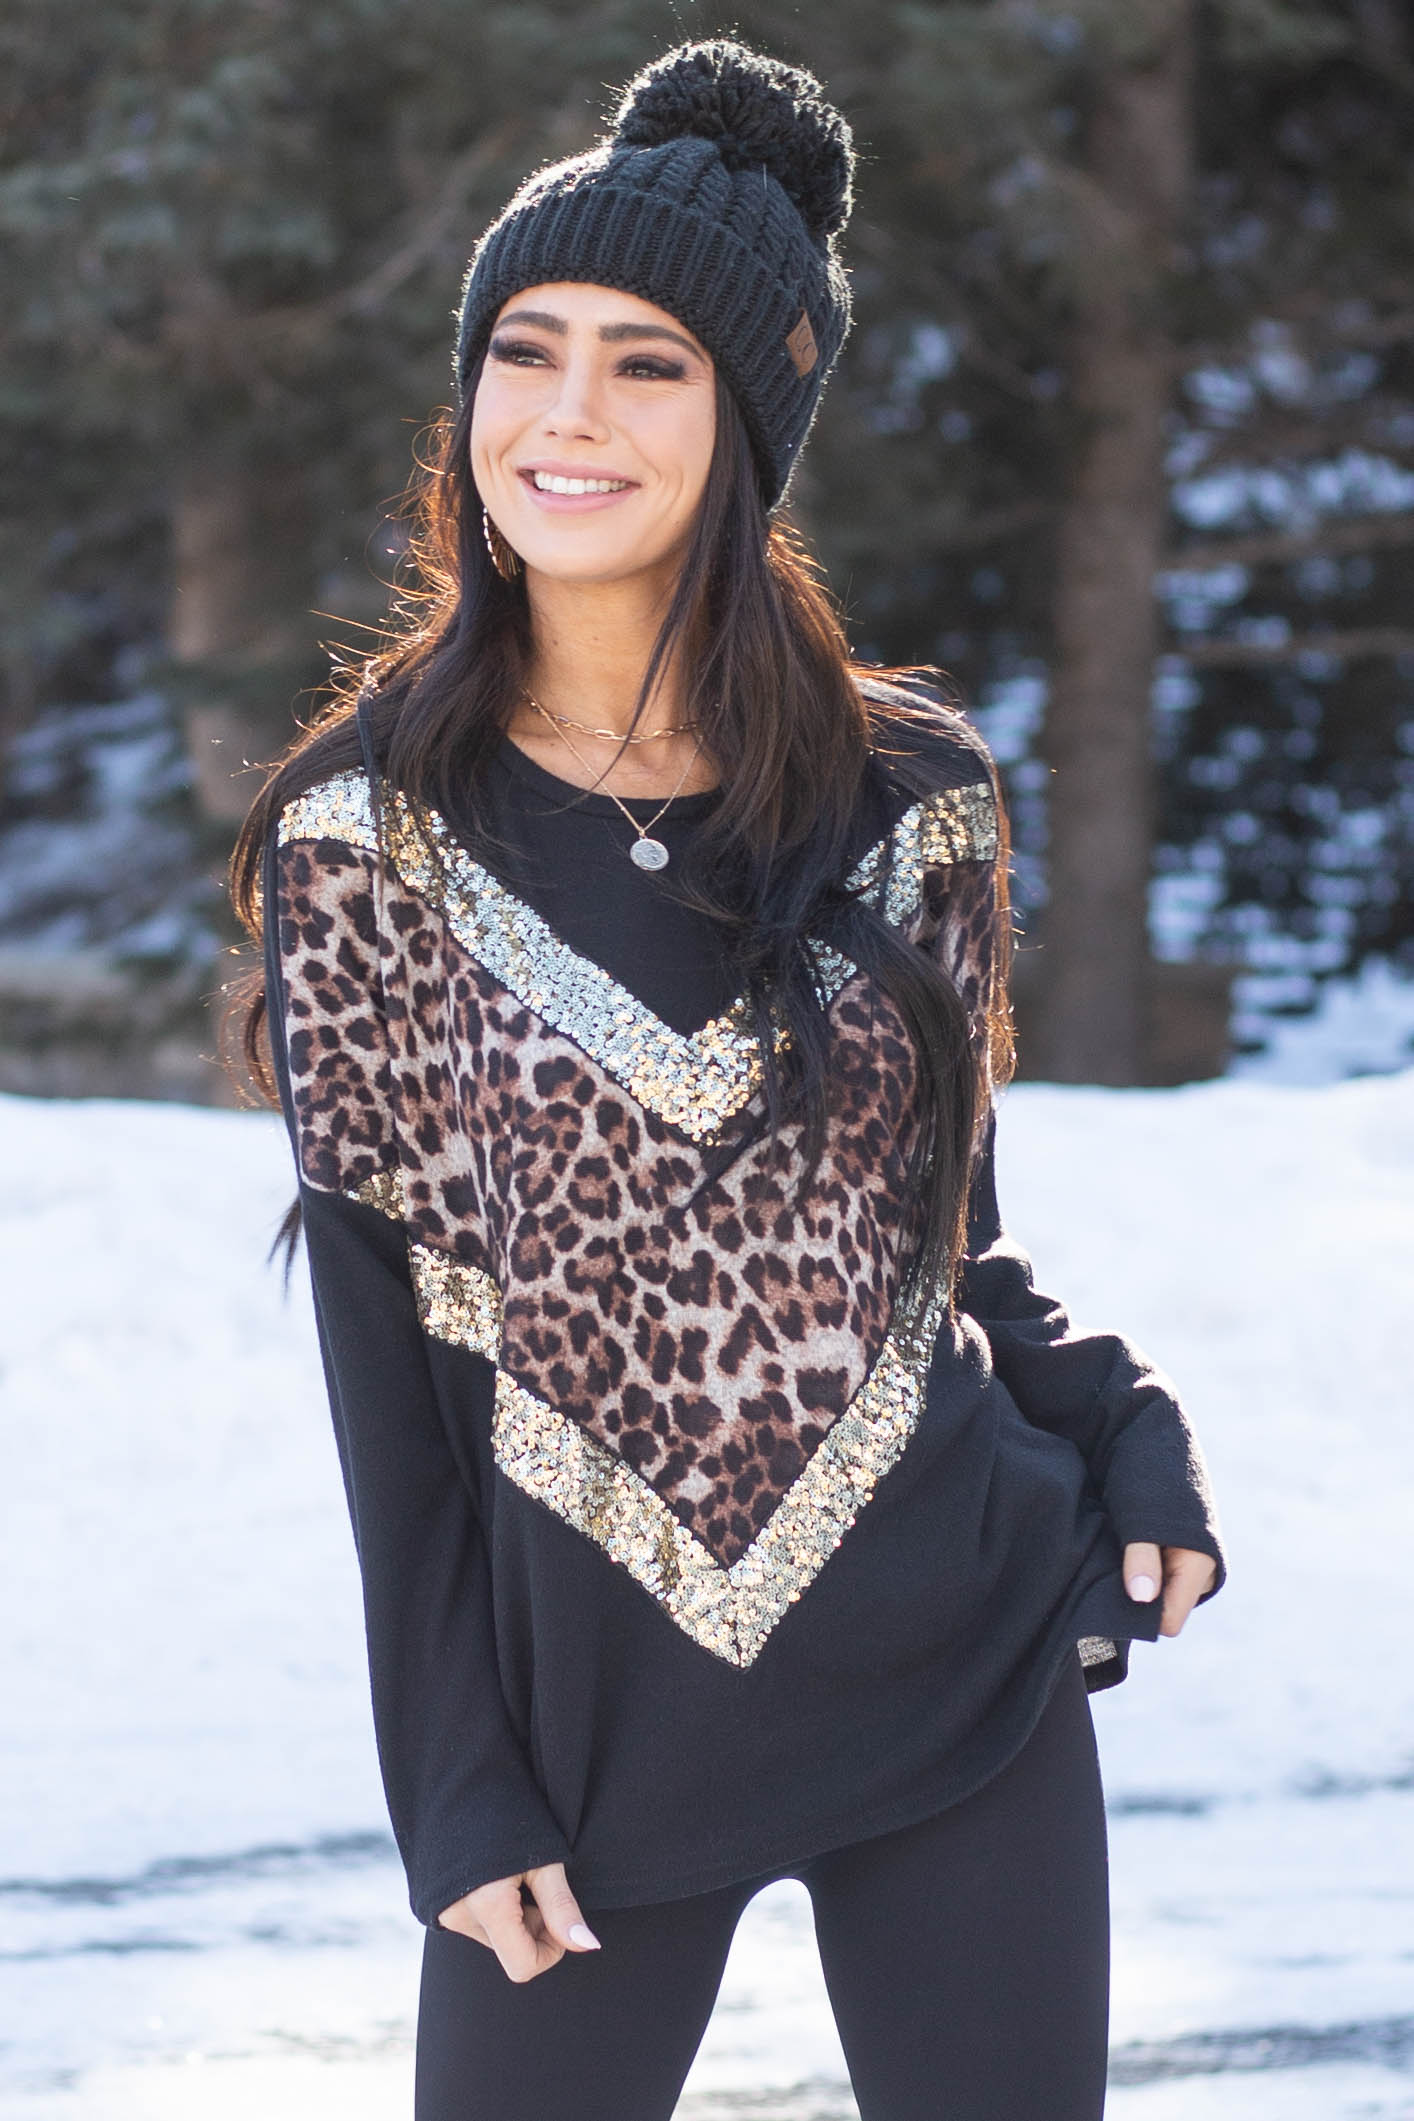 Black and Leopard Print Chevron Top With Gold Sequin Details